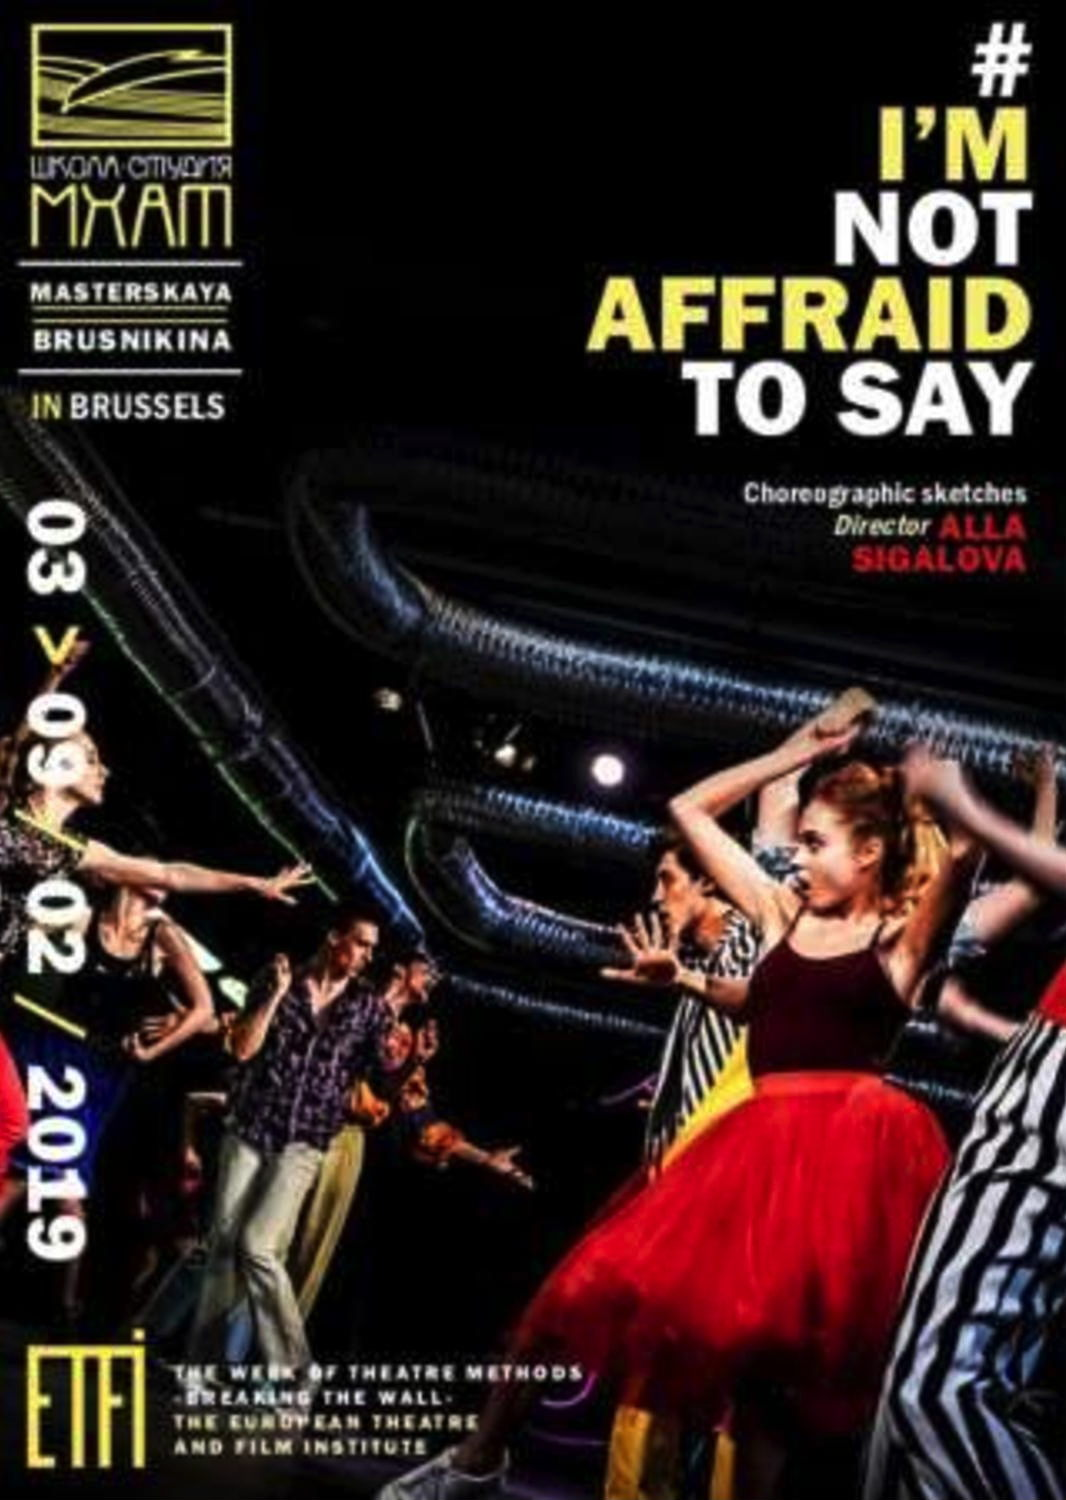 Affiche. EFTI - European Theatre and Film Institute, Bruxelles. Je n|ai pas peur de dire. 2019-02-04